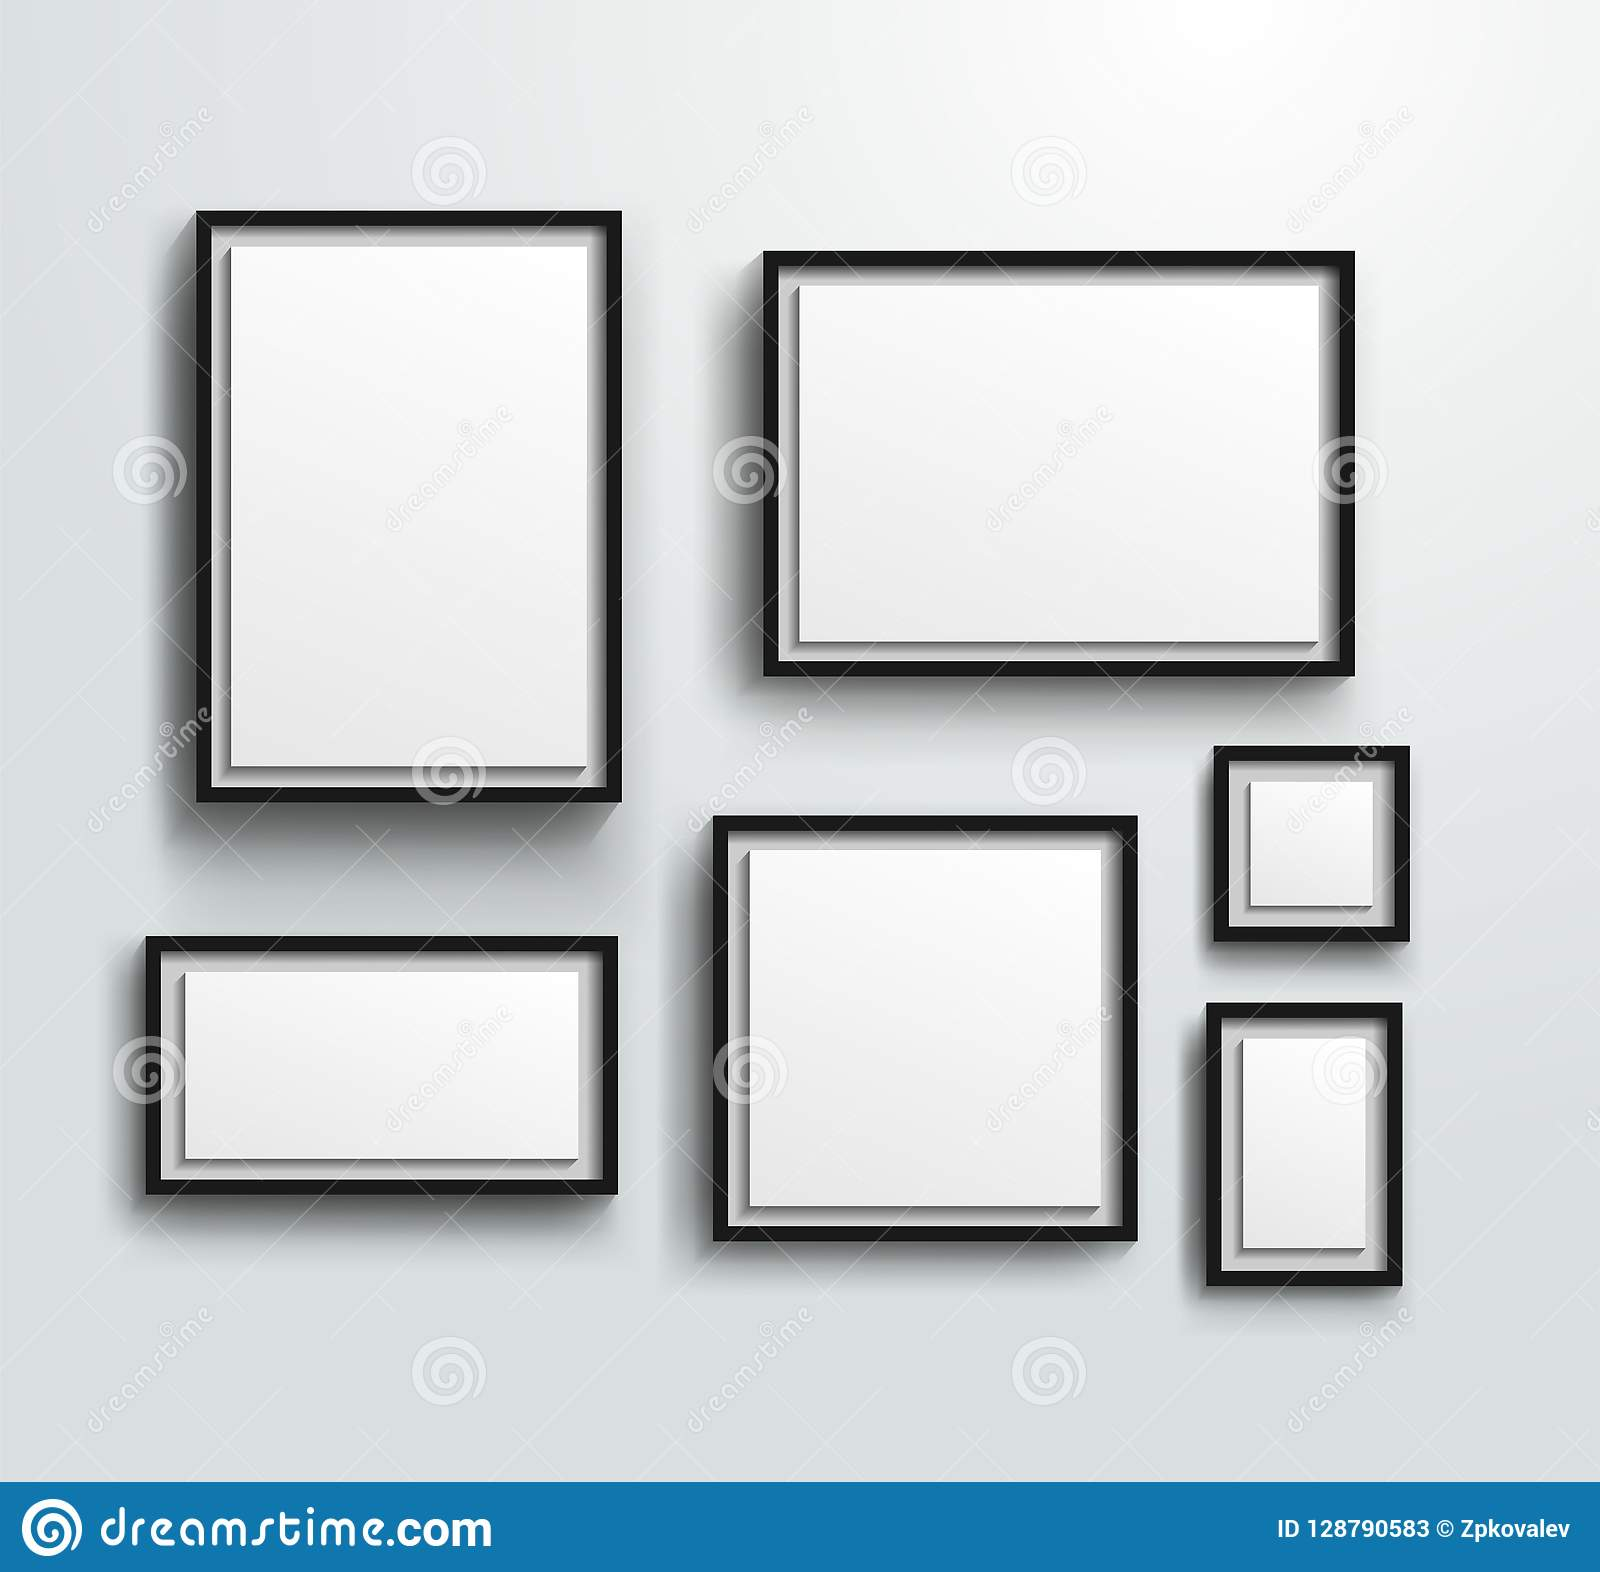 Blank Photo Frames On The Wall Design For A Modern Interior